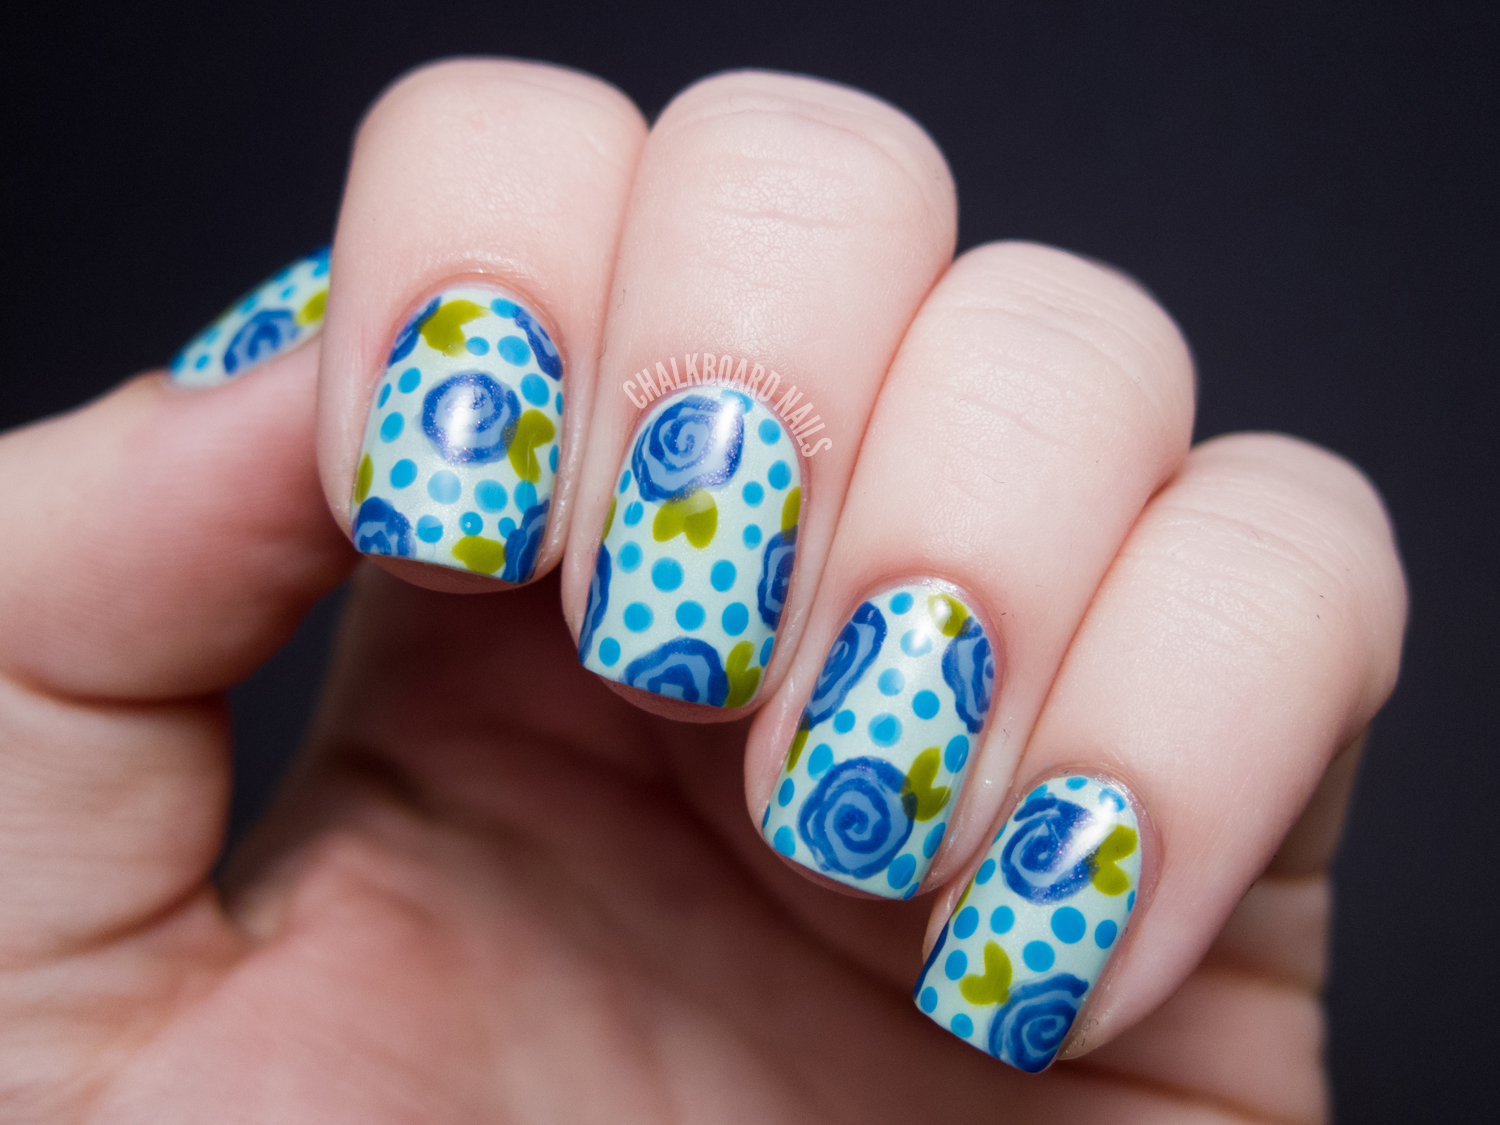 In A Random Coincidence, Nory From Fierce Makeup And Nails Posted A Floral  Print This Morning That Looks Pretty Similar! I Know That We Both Did Them  ...